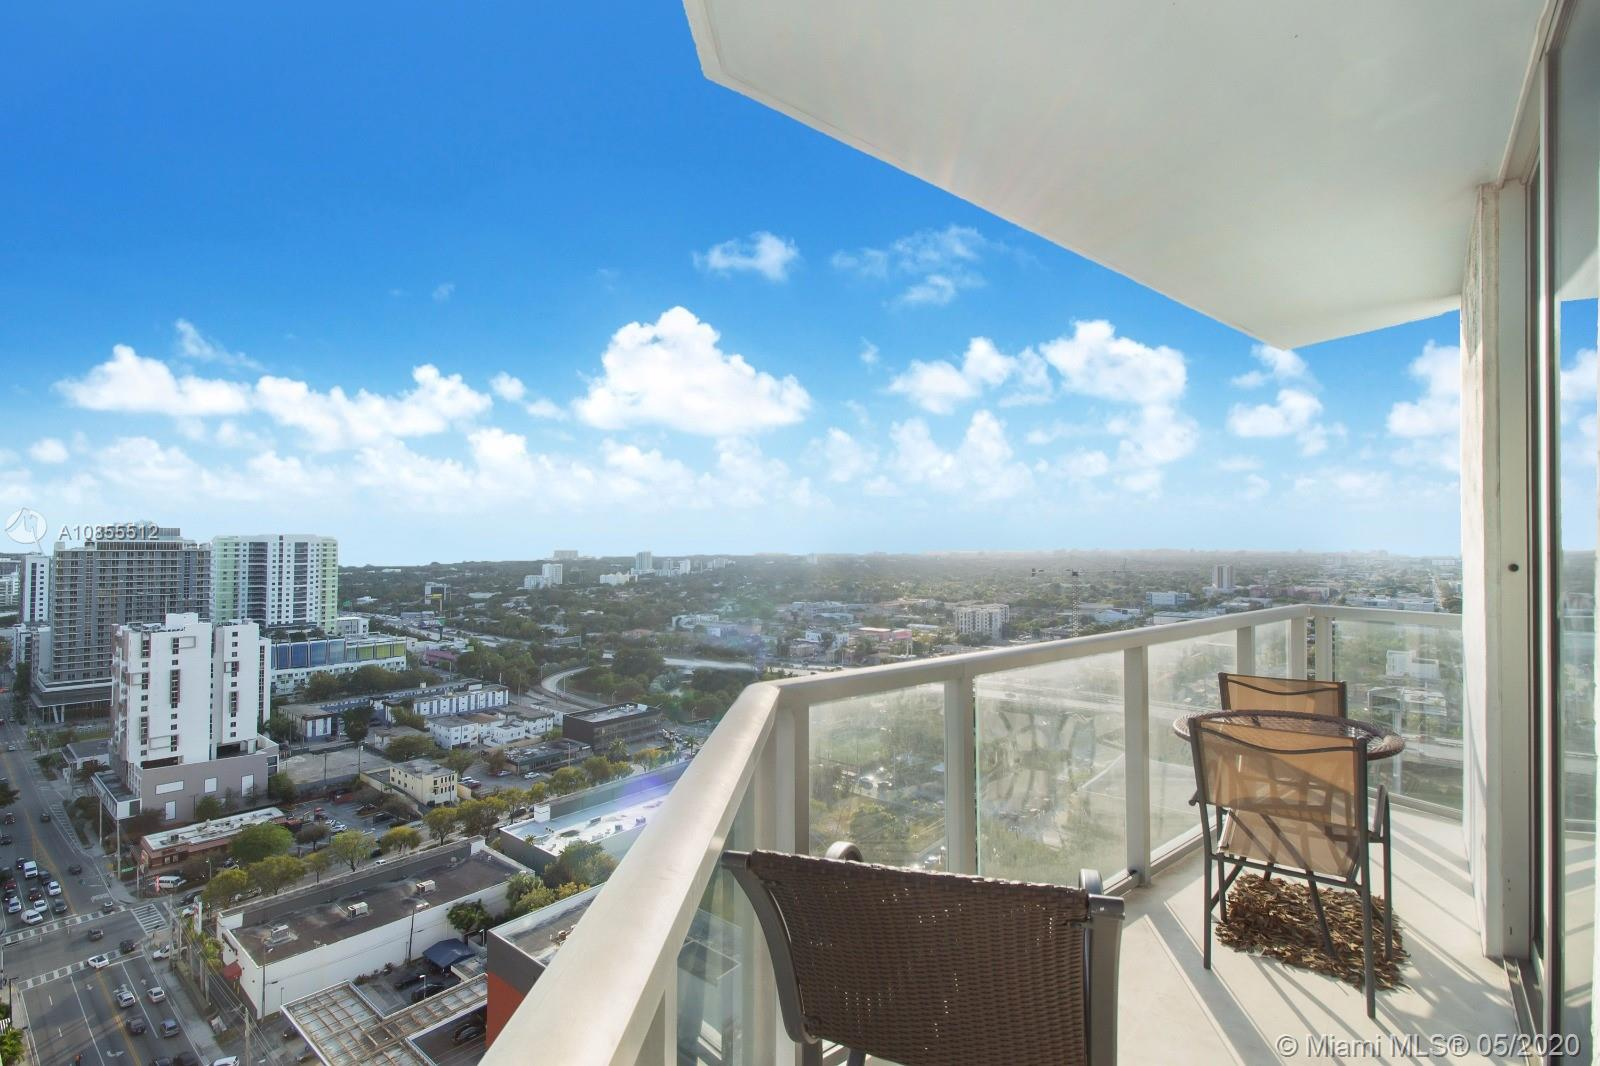 185 SW 7th St # 2402, Miami, Florida 33130, 2 Bedrooms Bedrooms, ,3 BathroomsBathrooms,Residential,For Sale,185 SW 7th St # 2402,A10855512